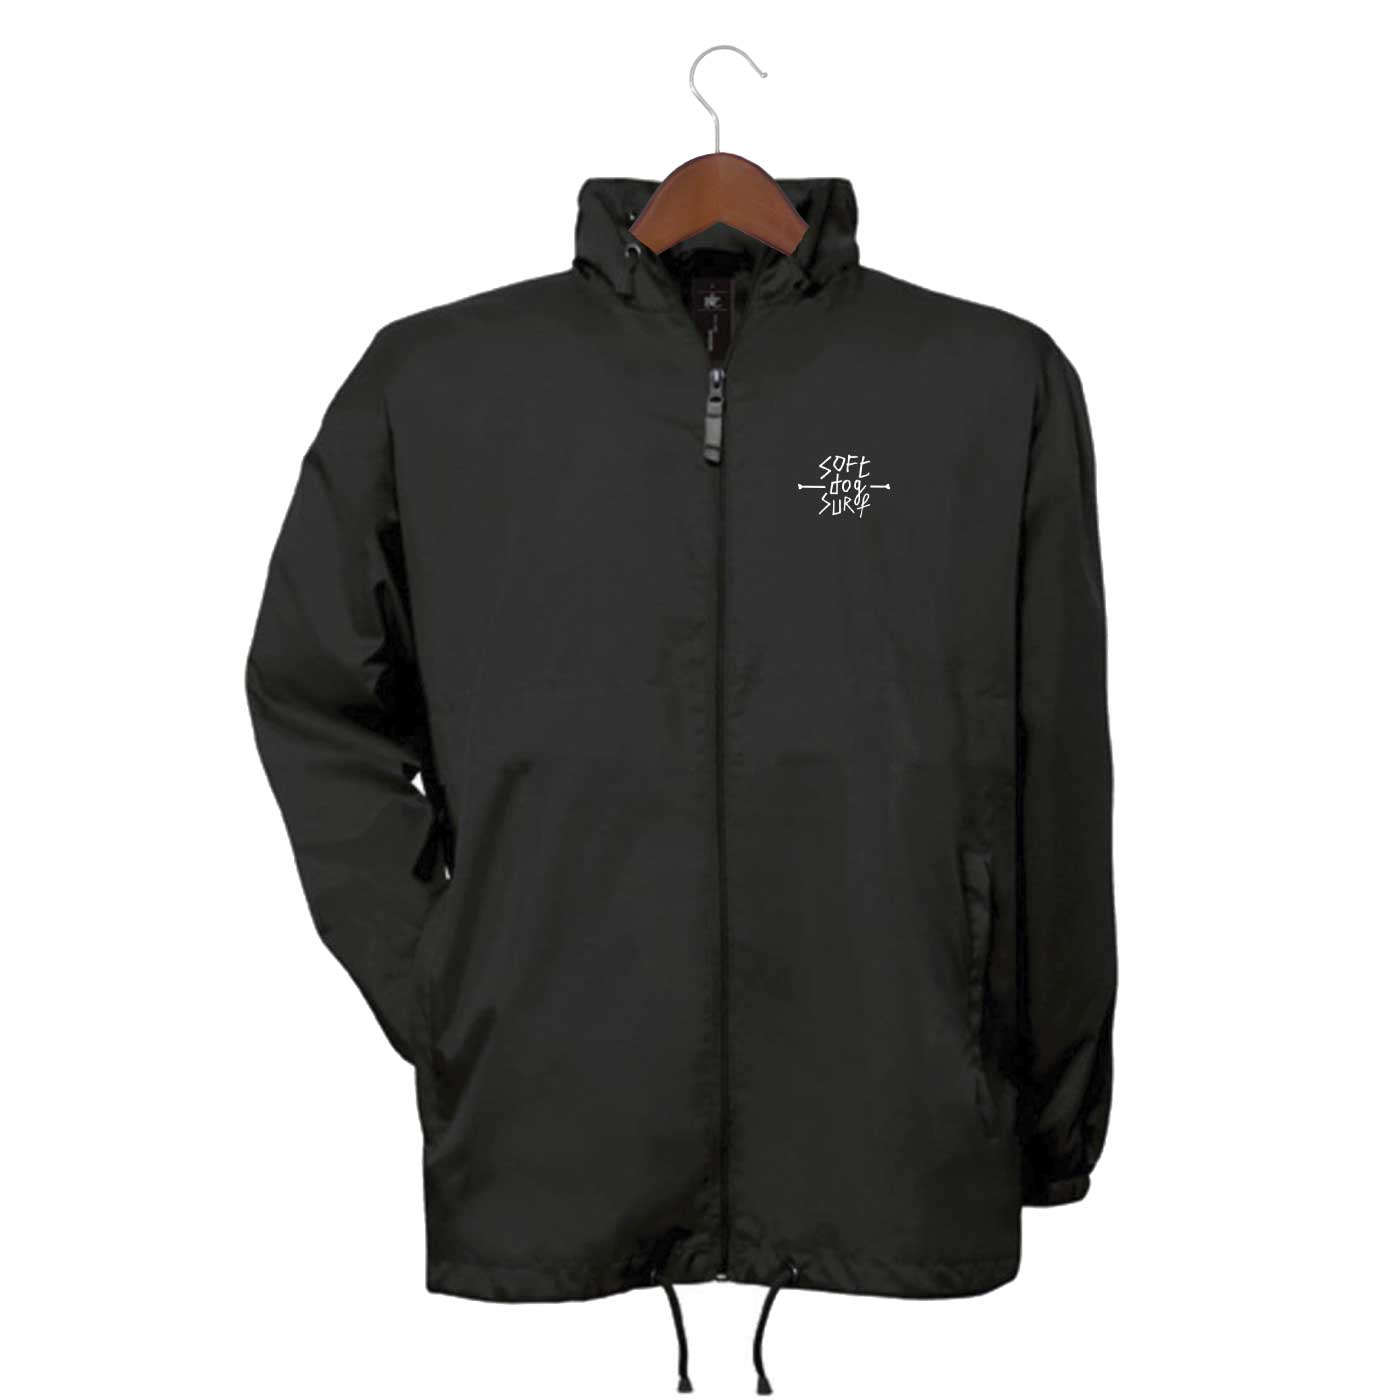 softdogsurf apparel jacket productpicture